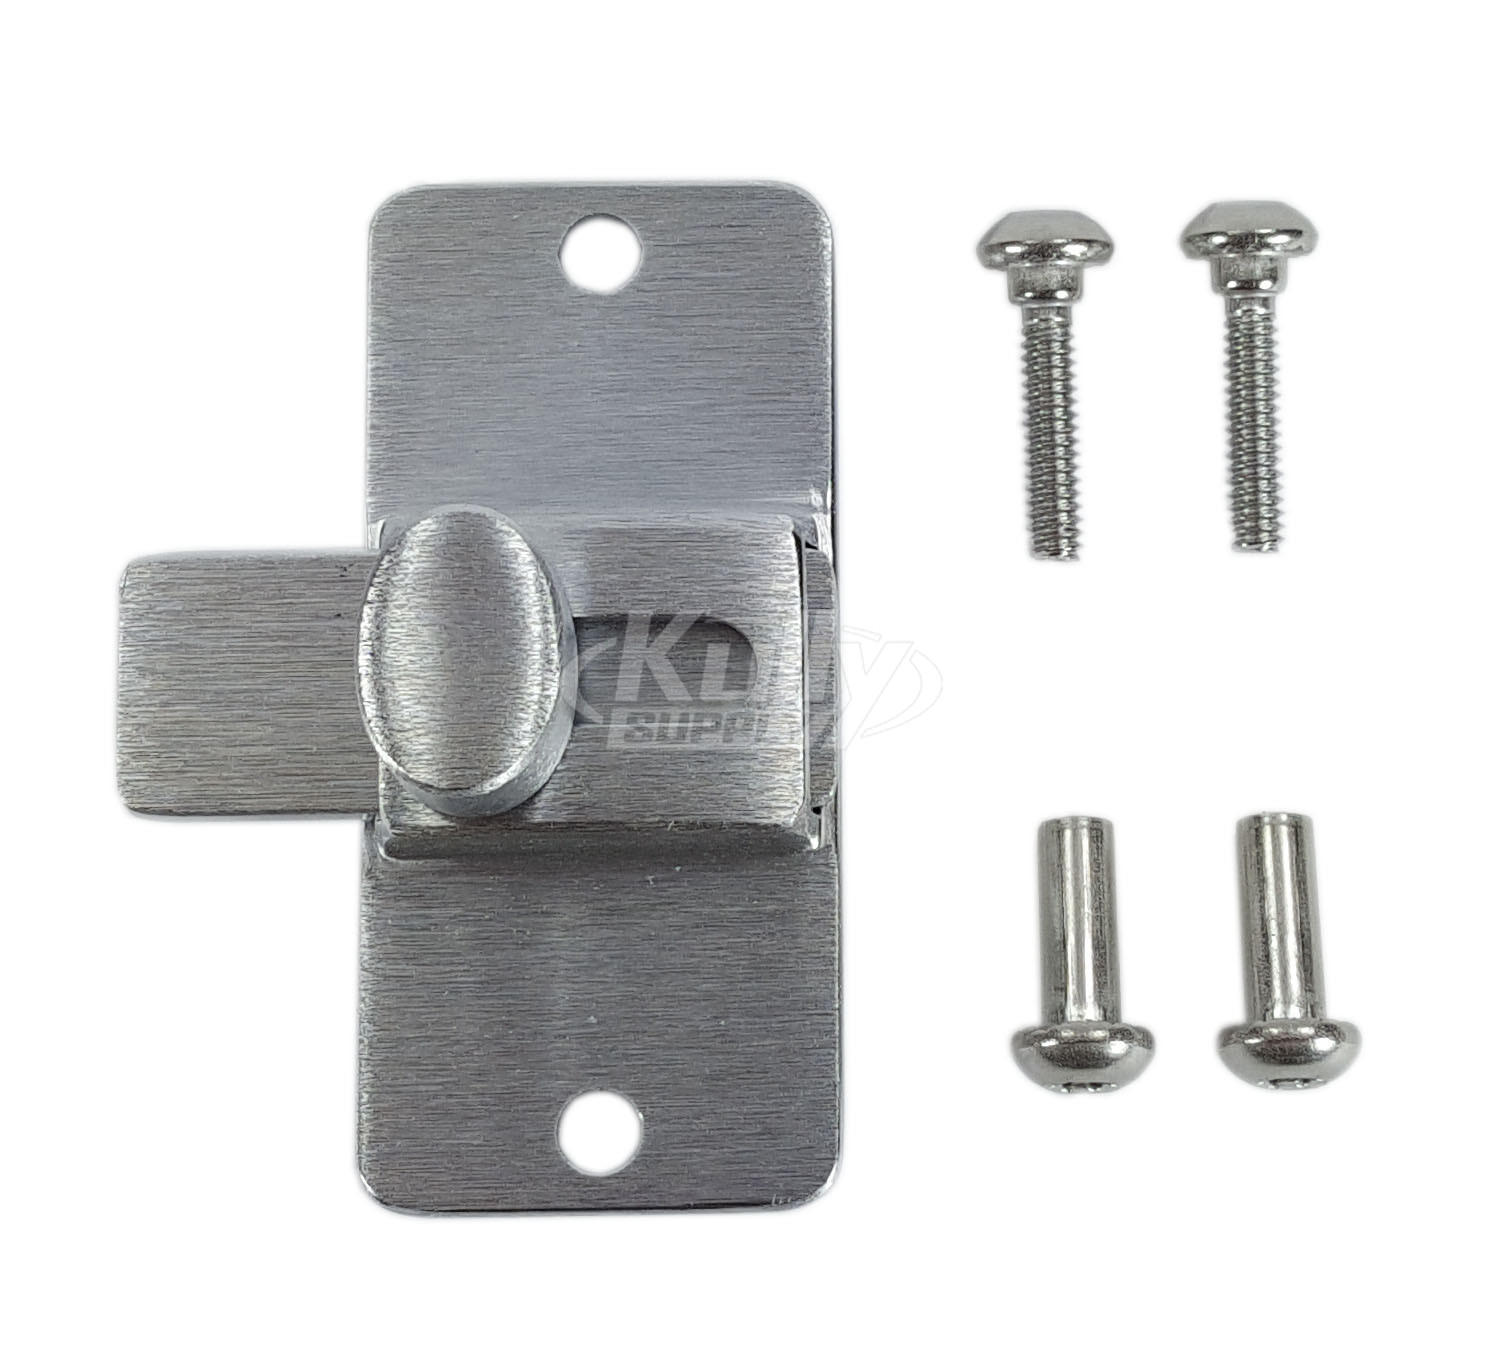 Accurate Toilet Partition HAP Cast Stainless Steel Slide Bolt - Bathroom partition slide latch